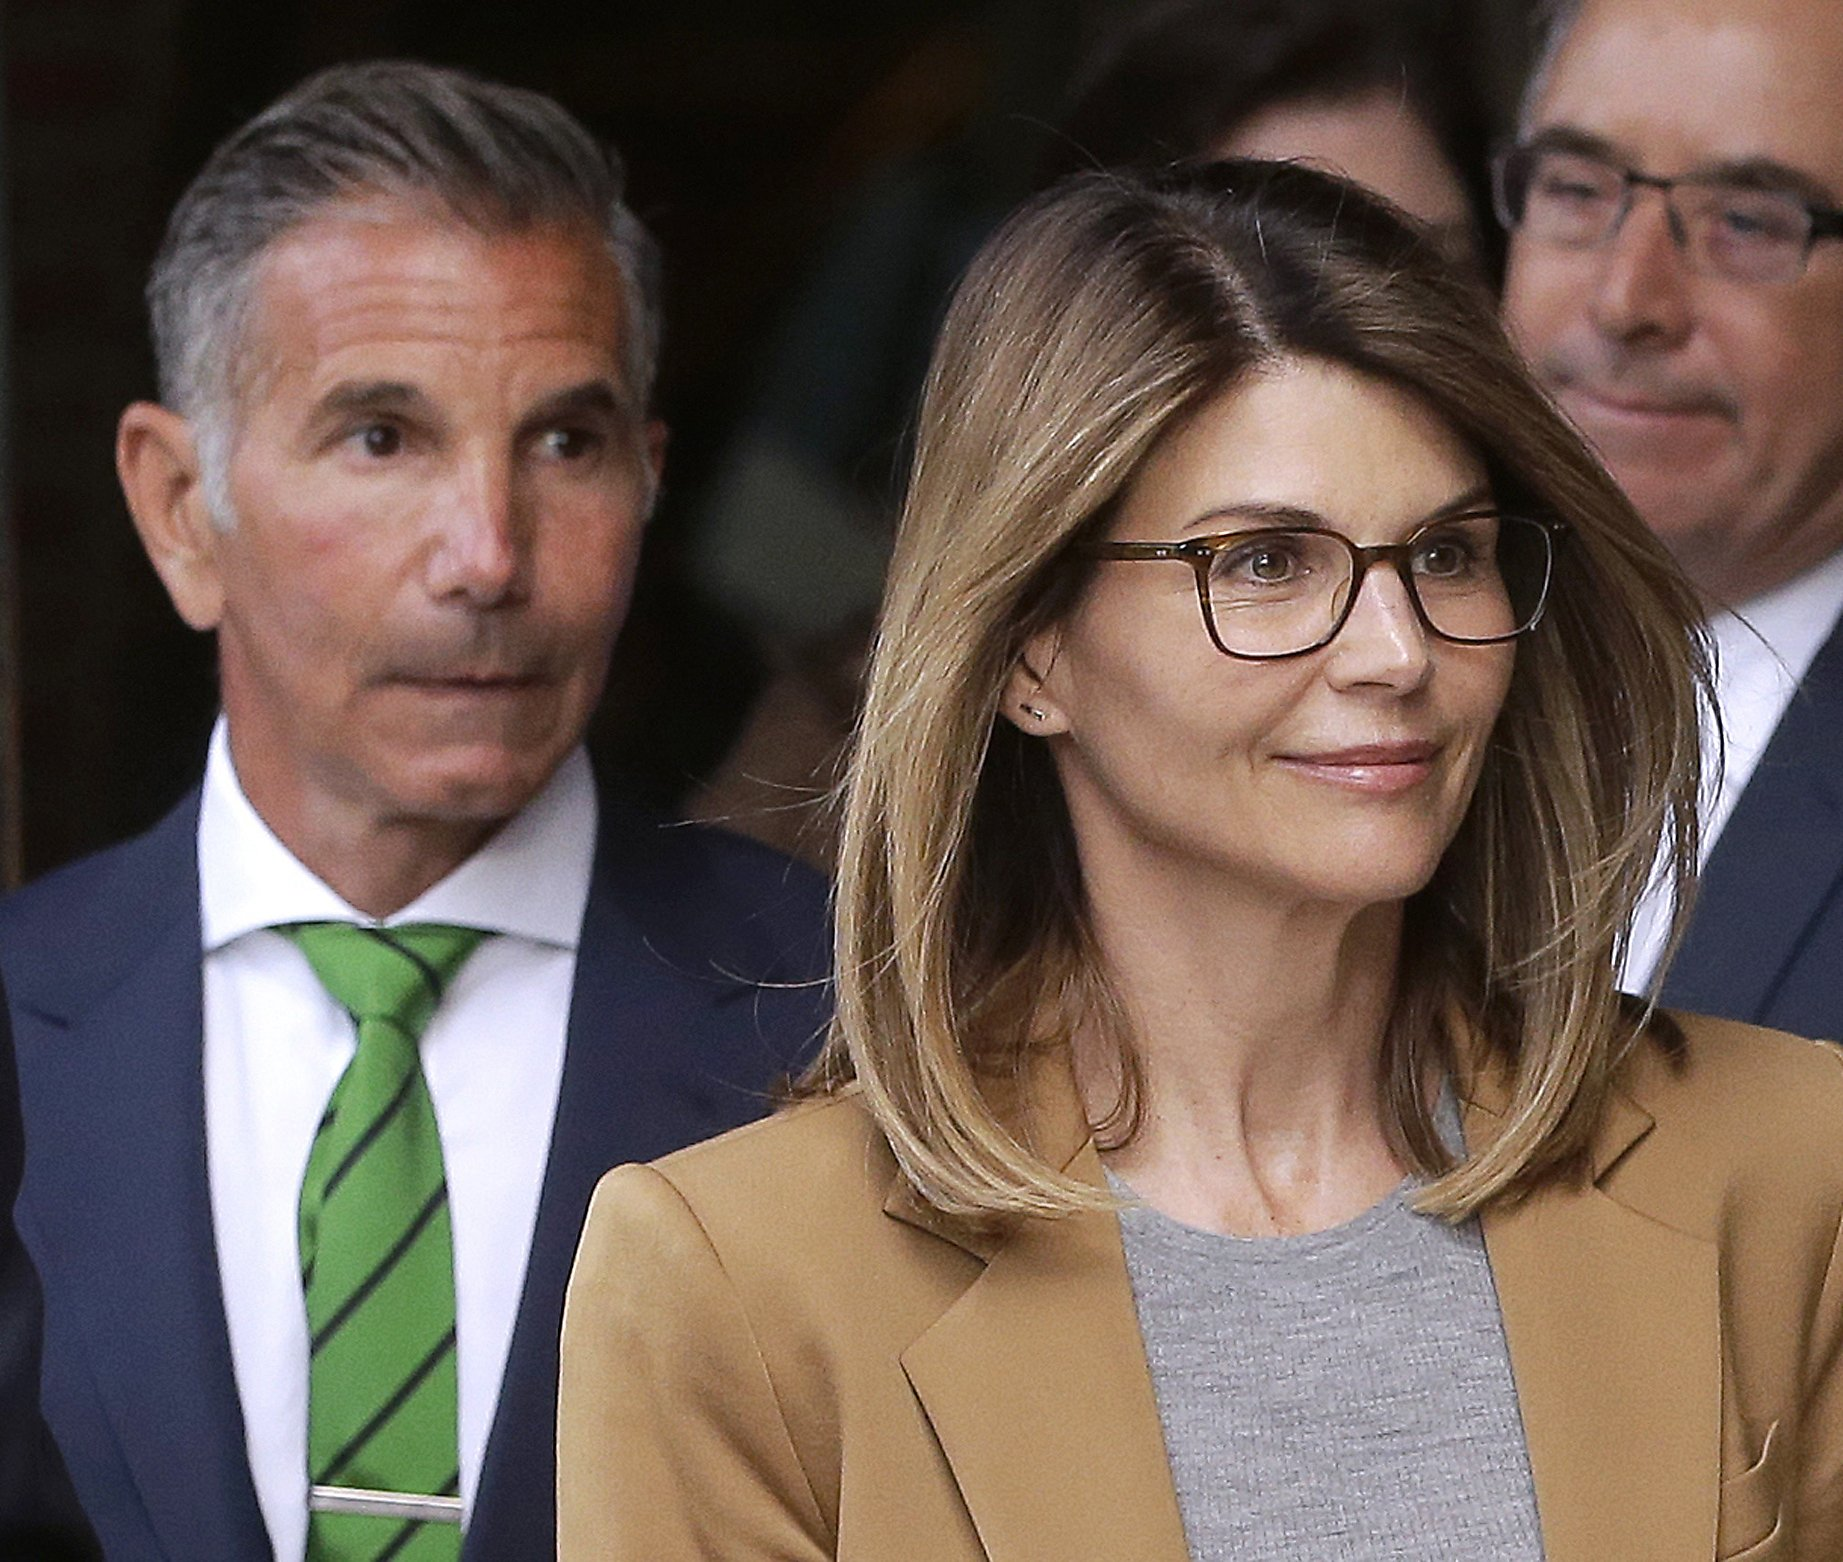 Lori Loughlin's husband Mossimo Giannulli says he lied about his own college education to get money